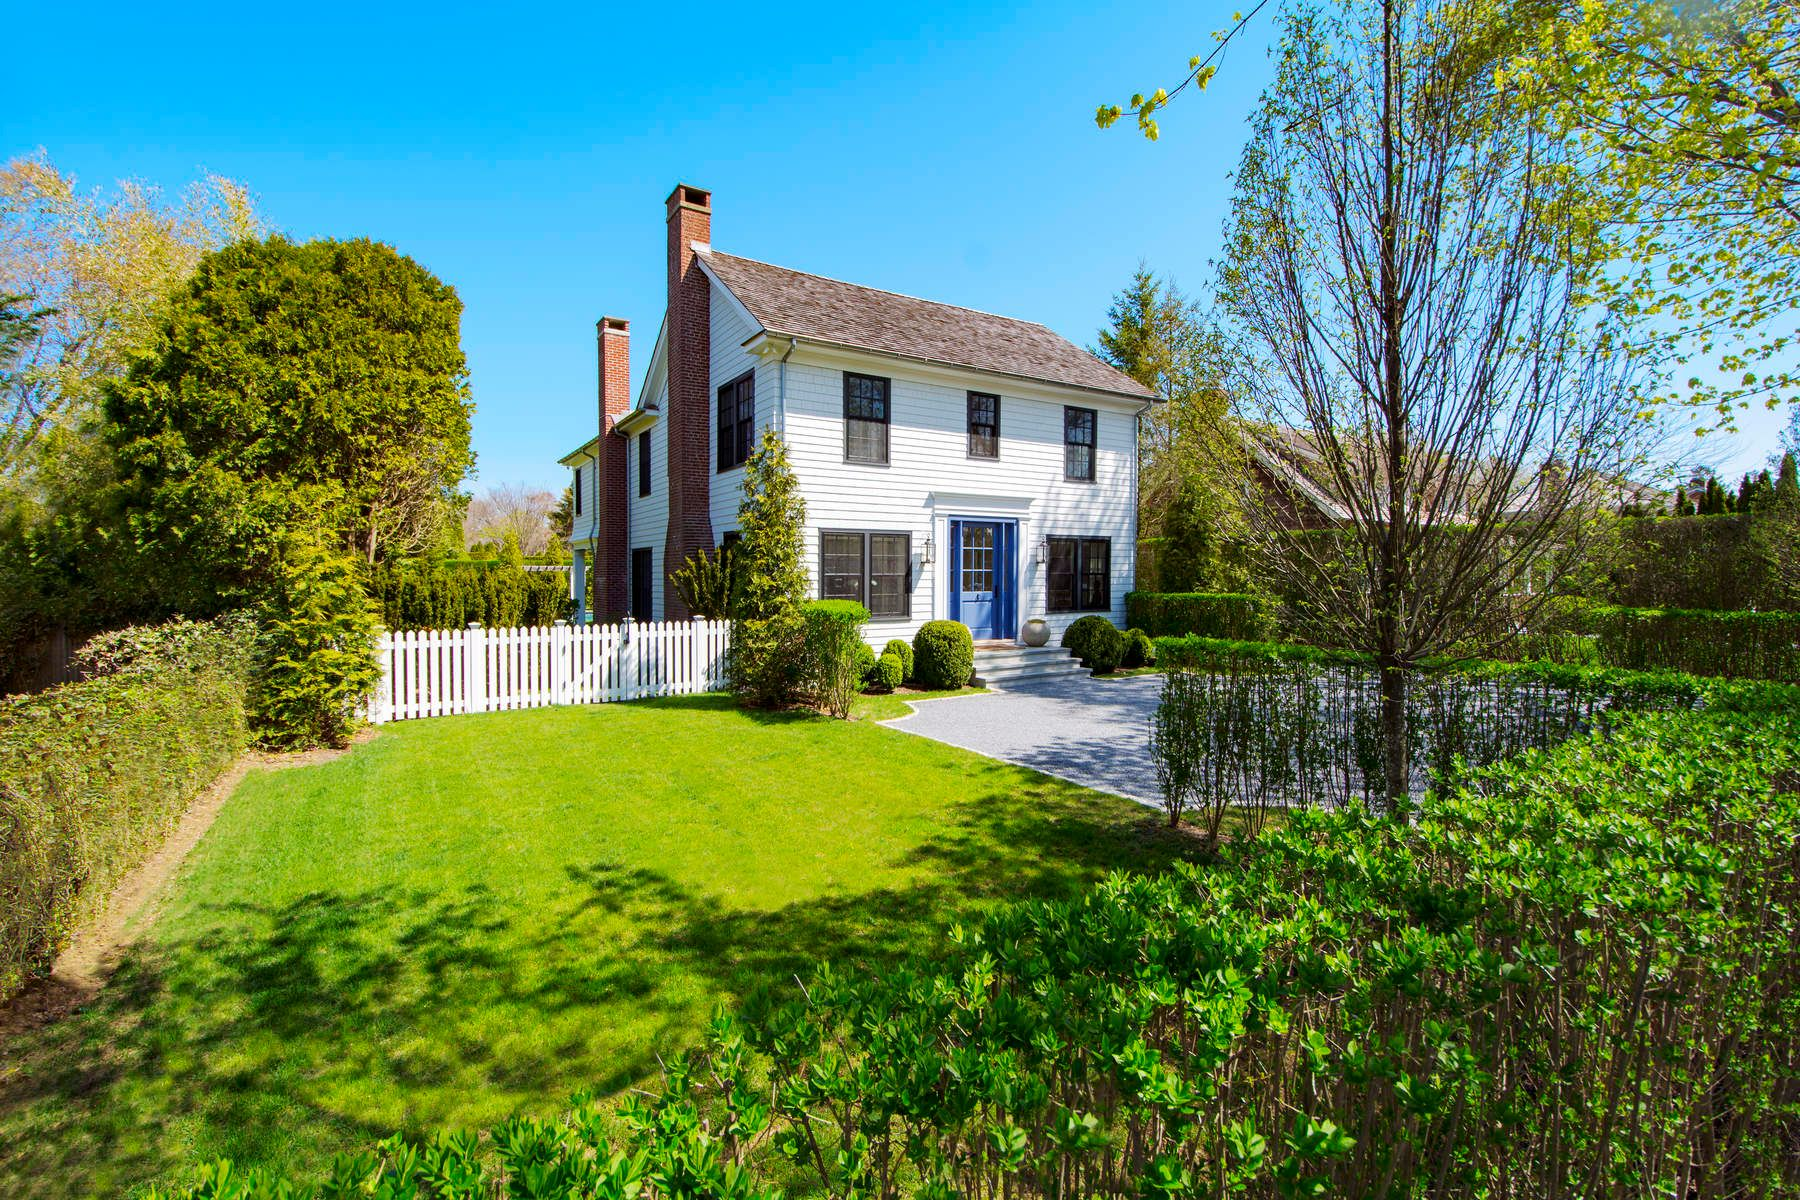 Single Family Home for Sale at World-Class Renovated Village Home 21 Old Town Crossing Southampton, New York 11968 United States